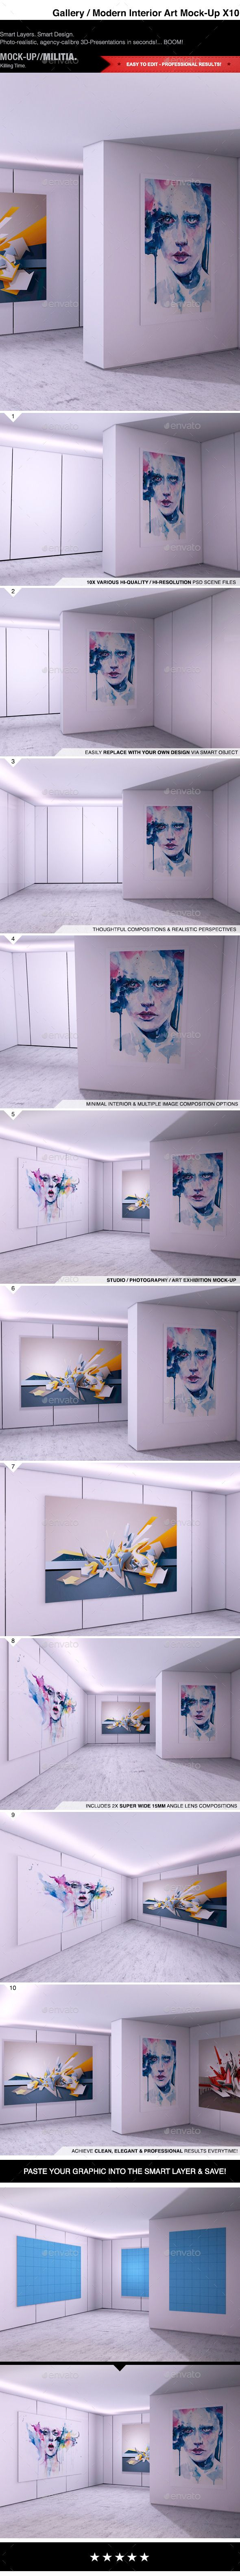 Modern Interior | Photography Art Gallery MockUp — Photoshop PSD #interior wall #clean • Available here → https://graphicriver.net/item/modern-interior-photography-art-gallery-mockup/10550809?ref=pxcr